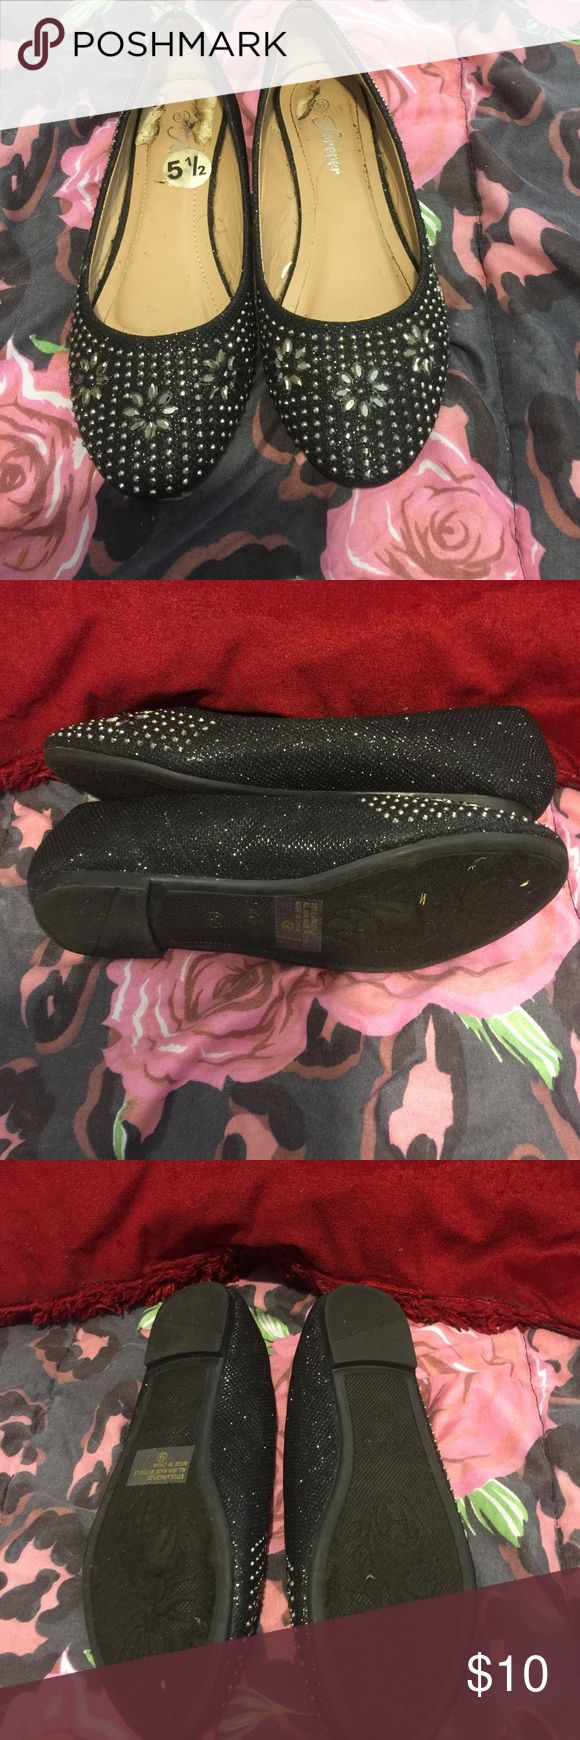 Black sparkly flats Worn once and then daughter outgrew them right after 8 th grade graduation. Super cut for everyday use. Stylish and comfortable. Bundle and save happy poshing💃🏻💋❤️ Forever Shoes Flats & Loafers